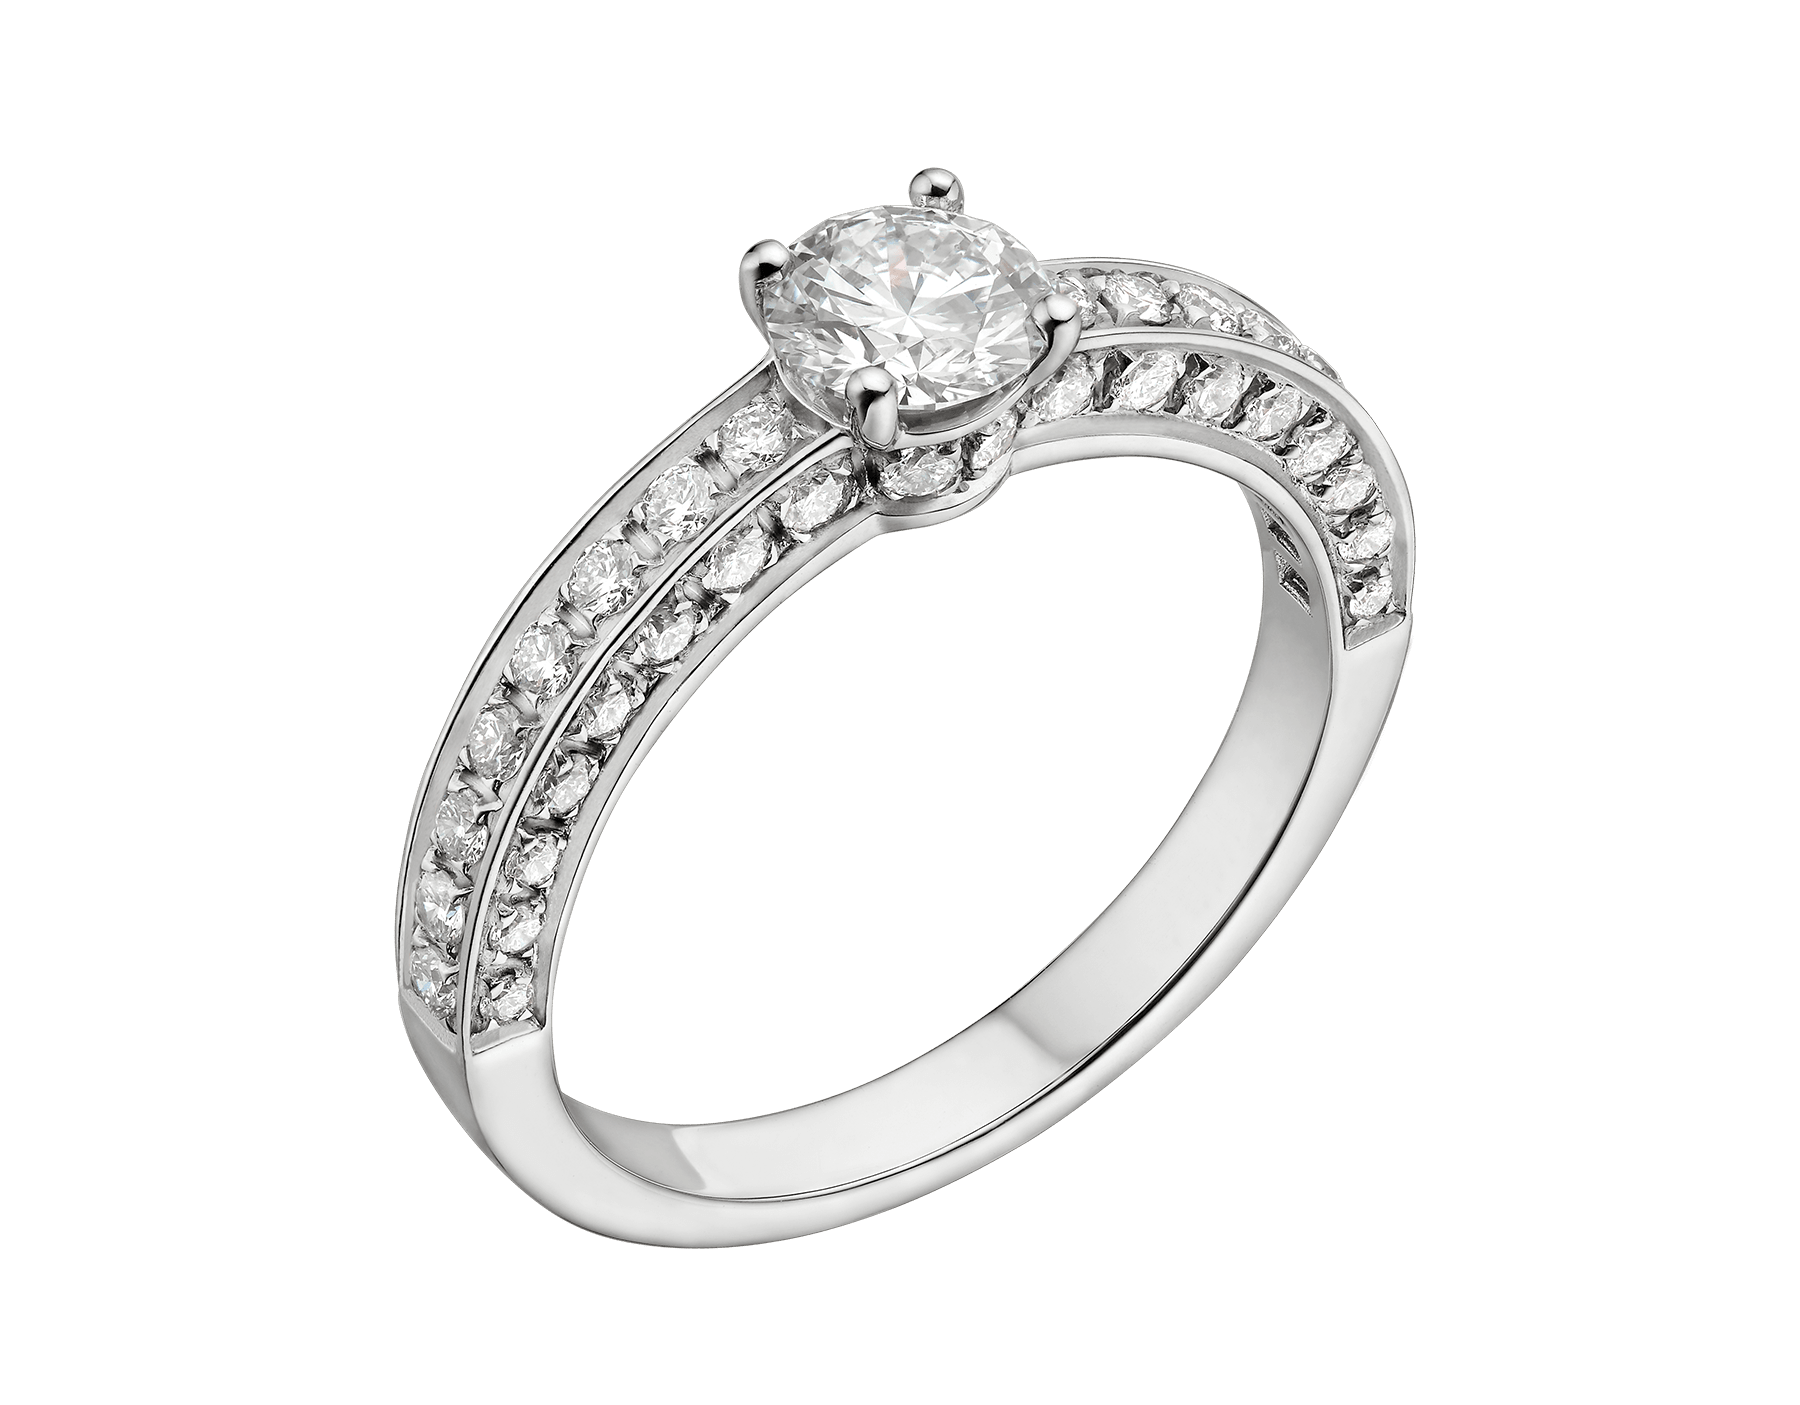 Dedicata a Venezia: 1503 solitaire ring in platinum with a round brilliant-cut diamond and pavé diamonds. Available from 0.30 ct. Named after the year in which the first engagement ring was offered in Venice. 344054 image 1